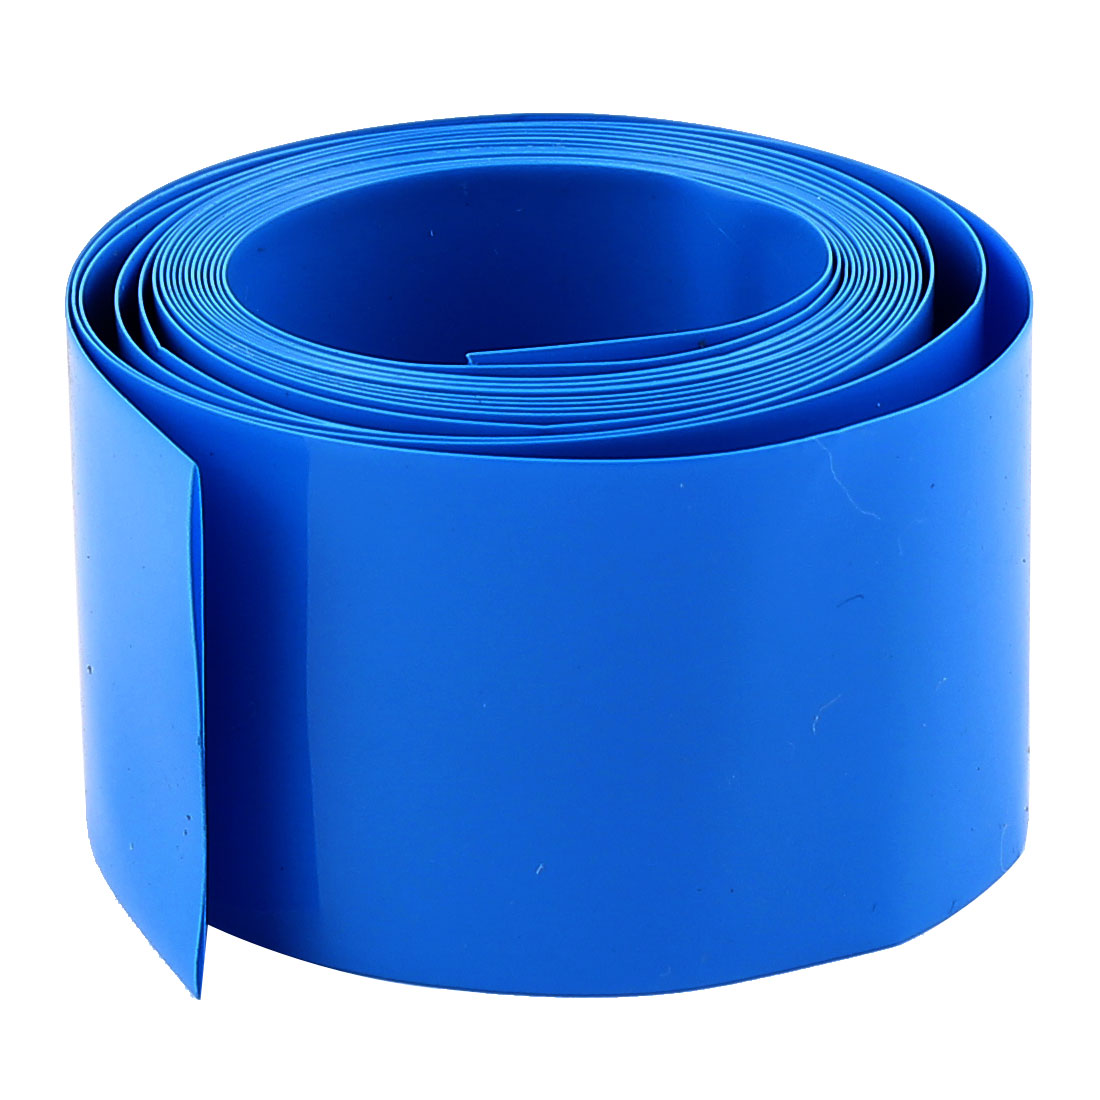 2m x 18.5mm Dia PVC Insulated Heat Shrink Tubing Battery Protective Tube Blue